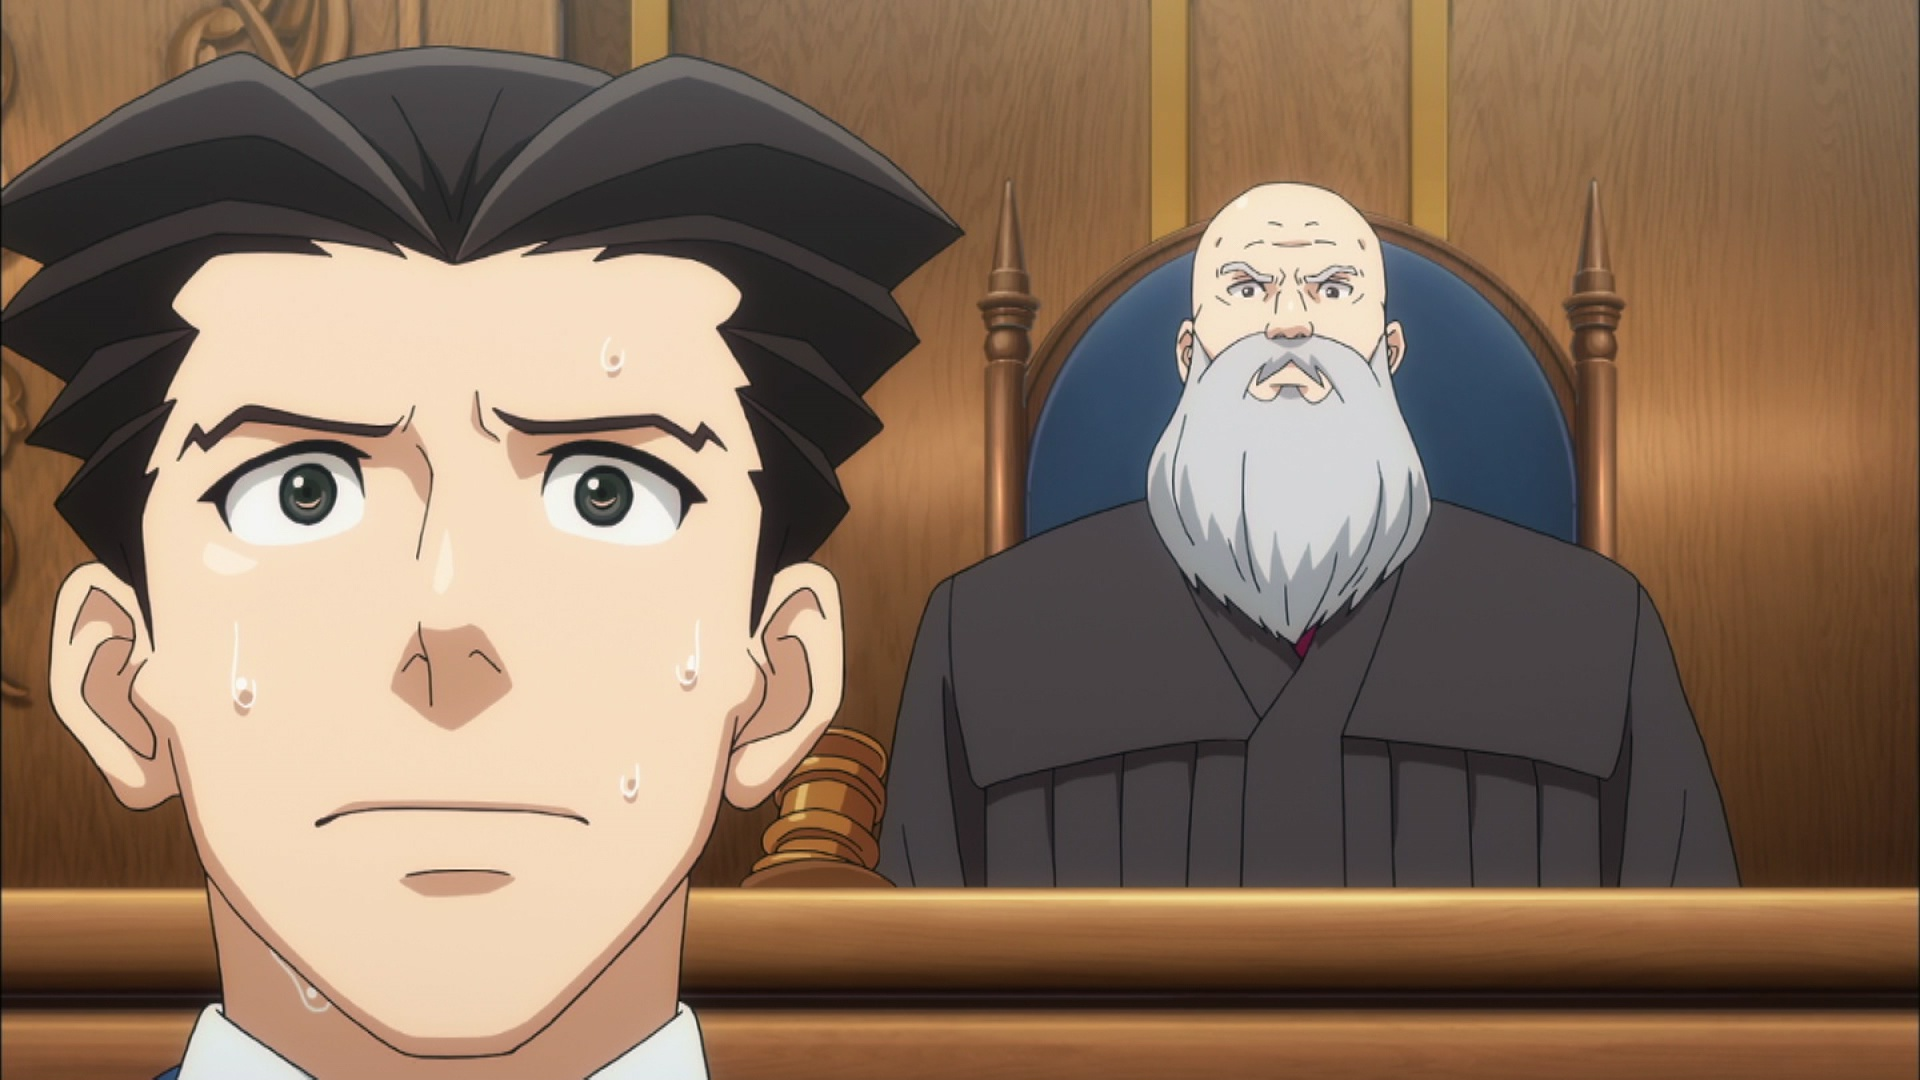 Watch Ace Attorney Season 2 Episode 25 Sub Dub Anime Uncut